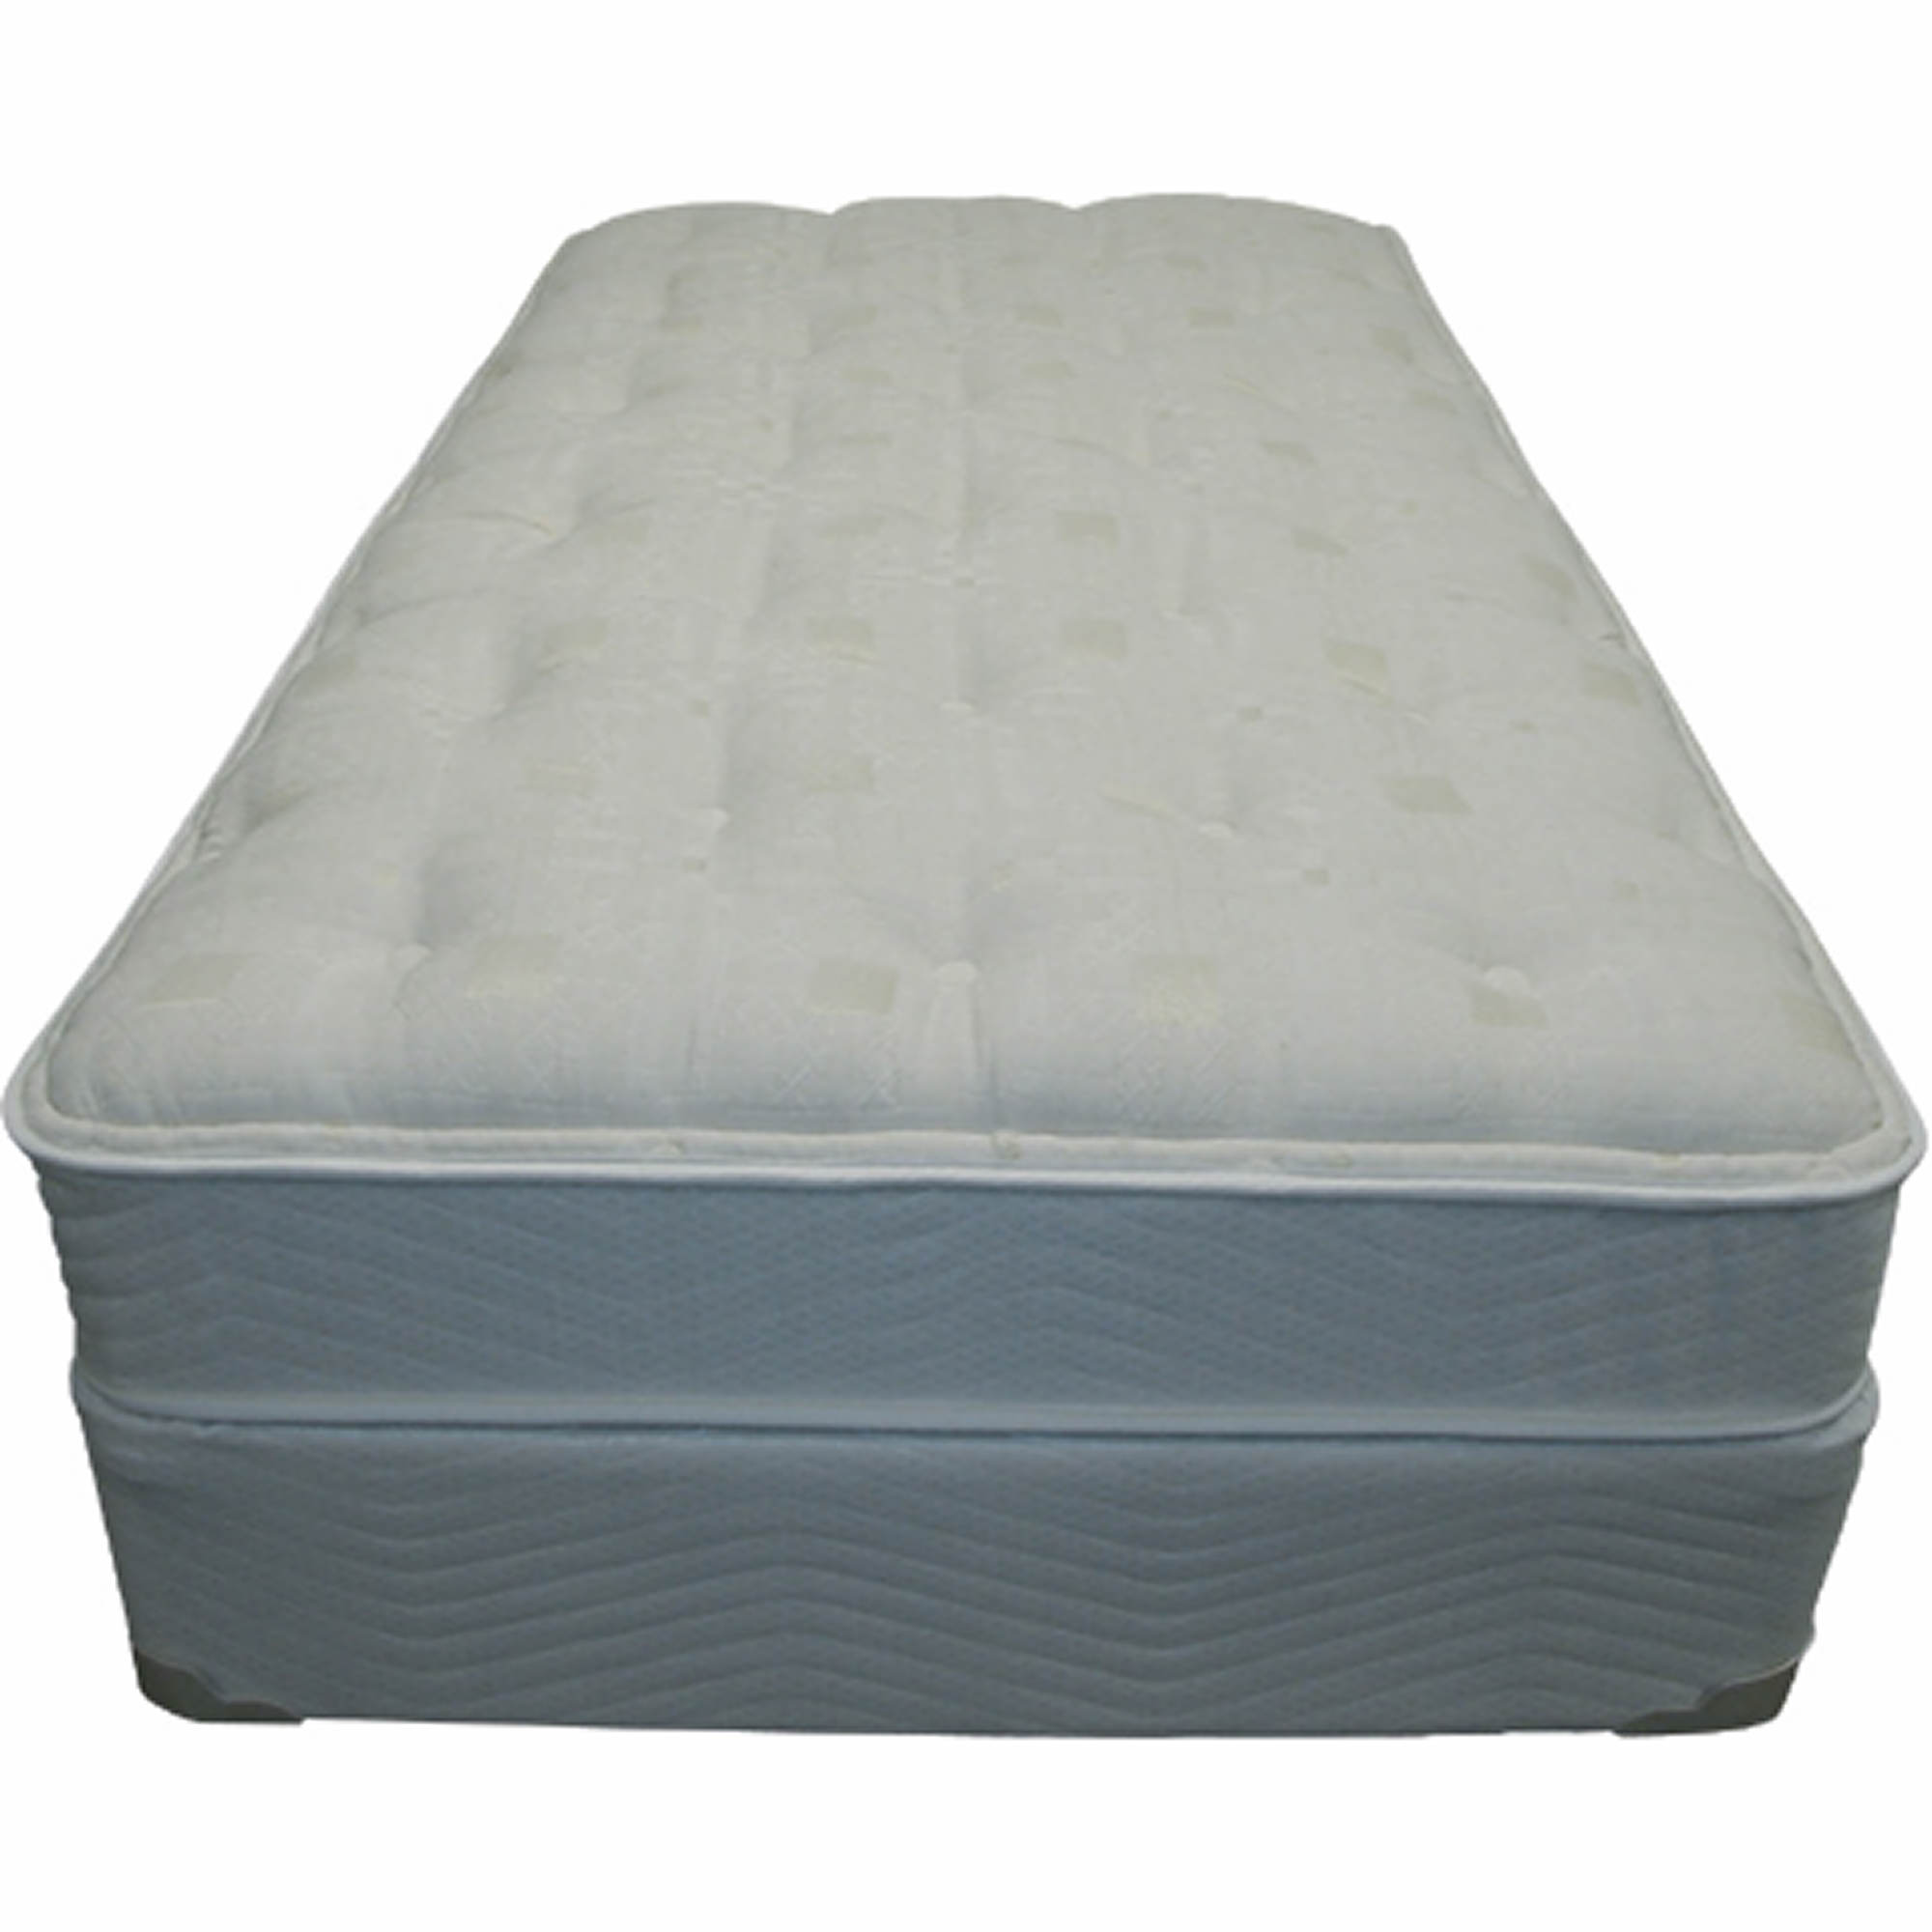 Therapedic Posture Coil Deluxe King Size Mattress Set Bj 39 S Wholesale Club